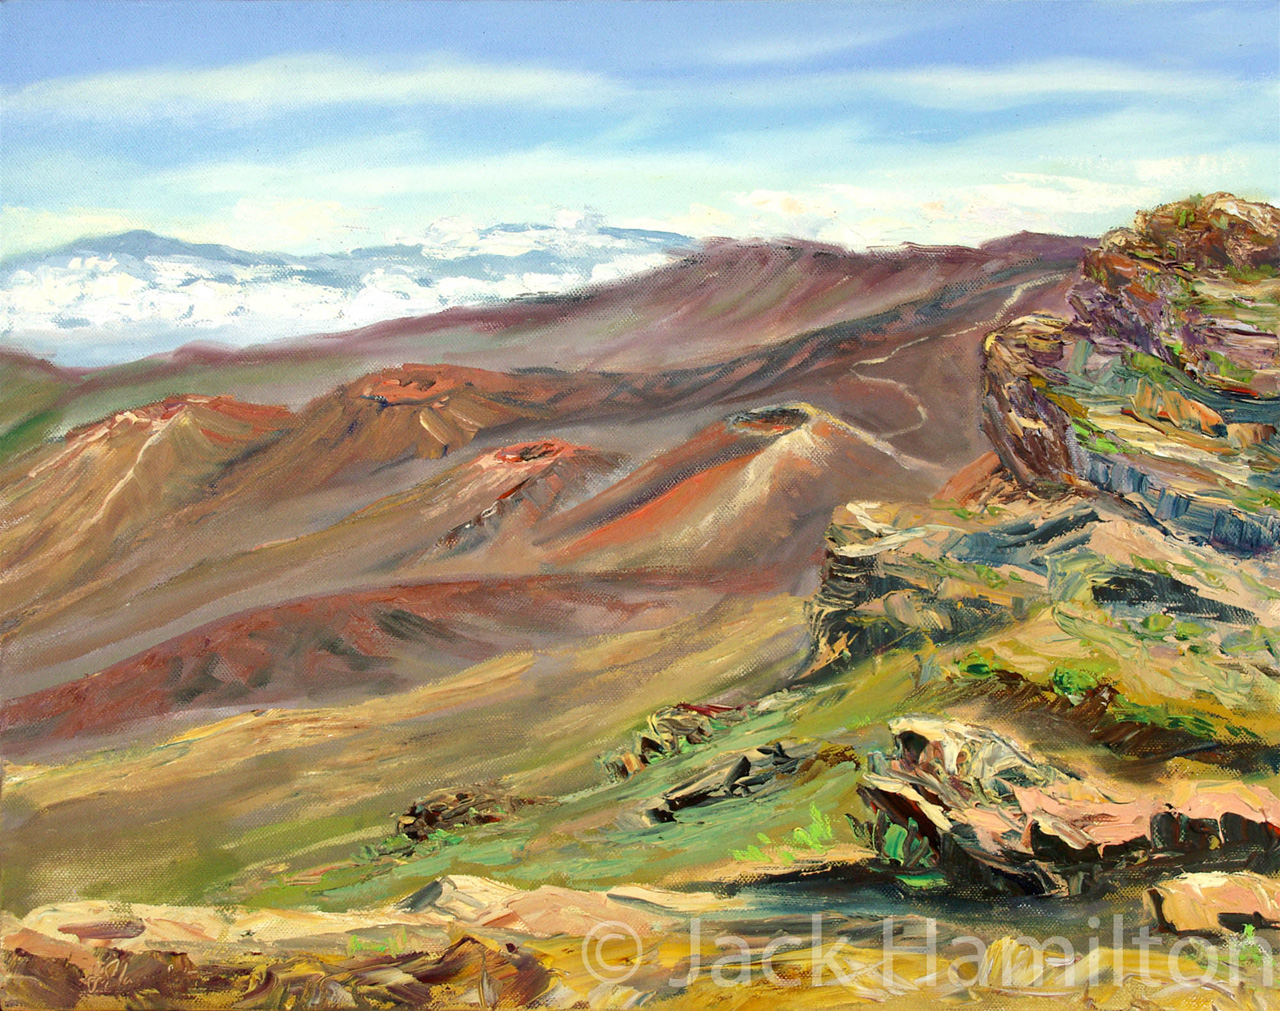 Oil Painting of Cinder Cones At Haleakala Crater by Jack Hamilton